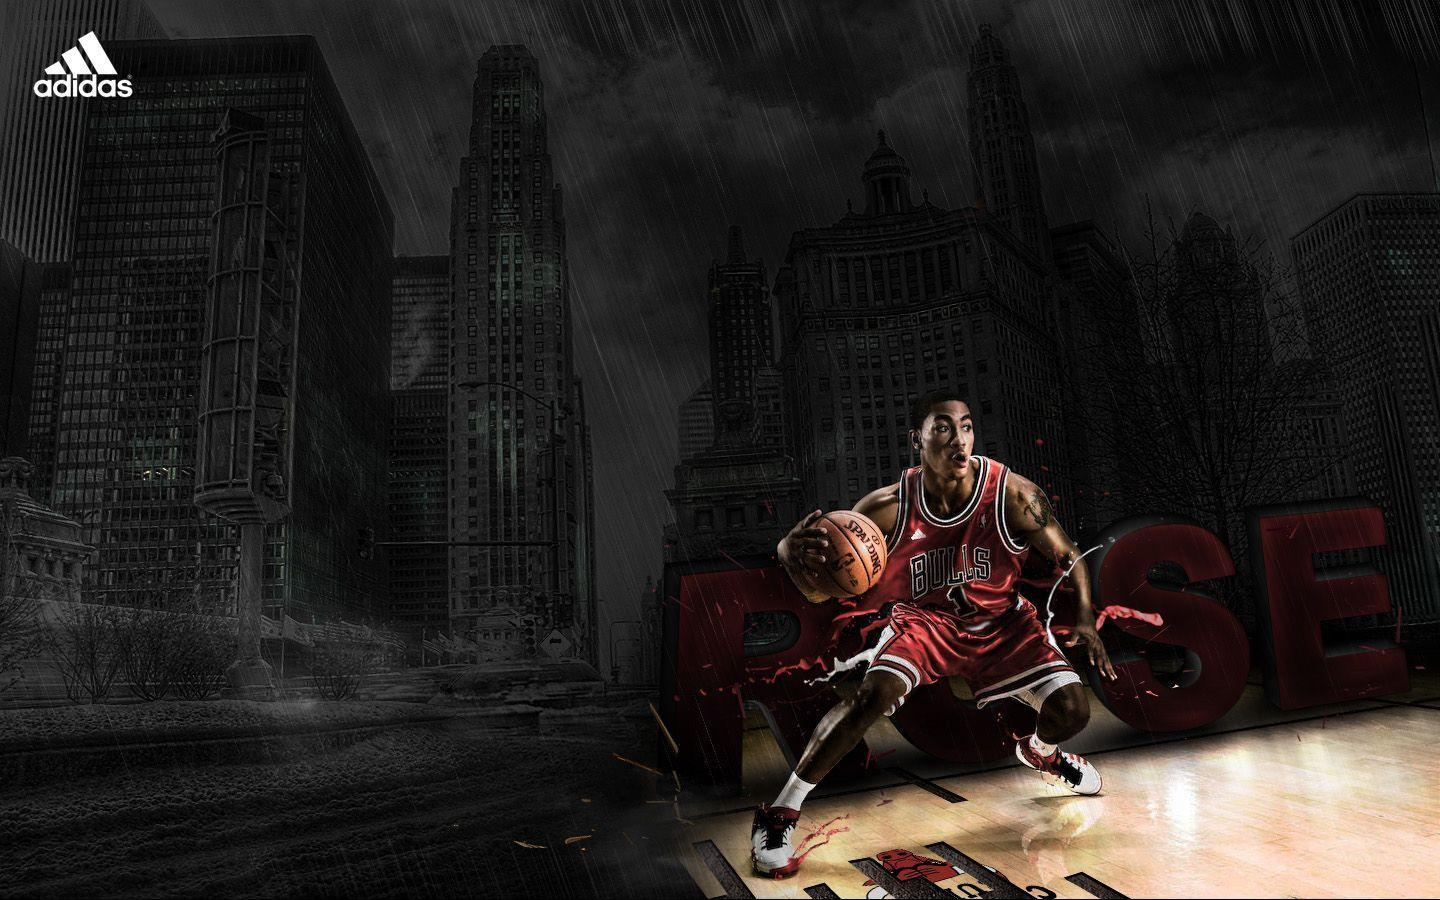 Wallpapers For > Derrick Rose Adidas Wallpapers